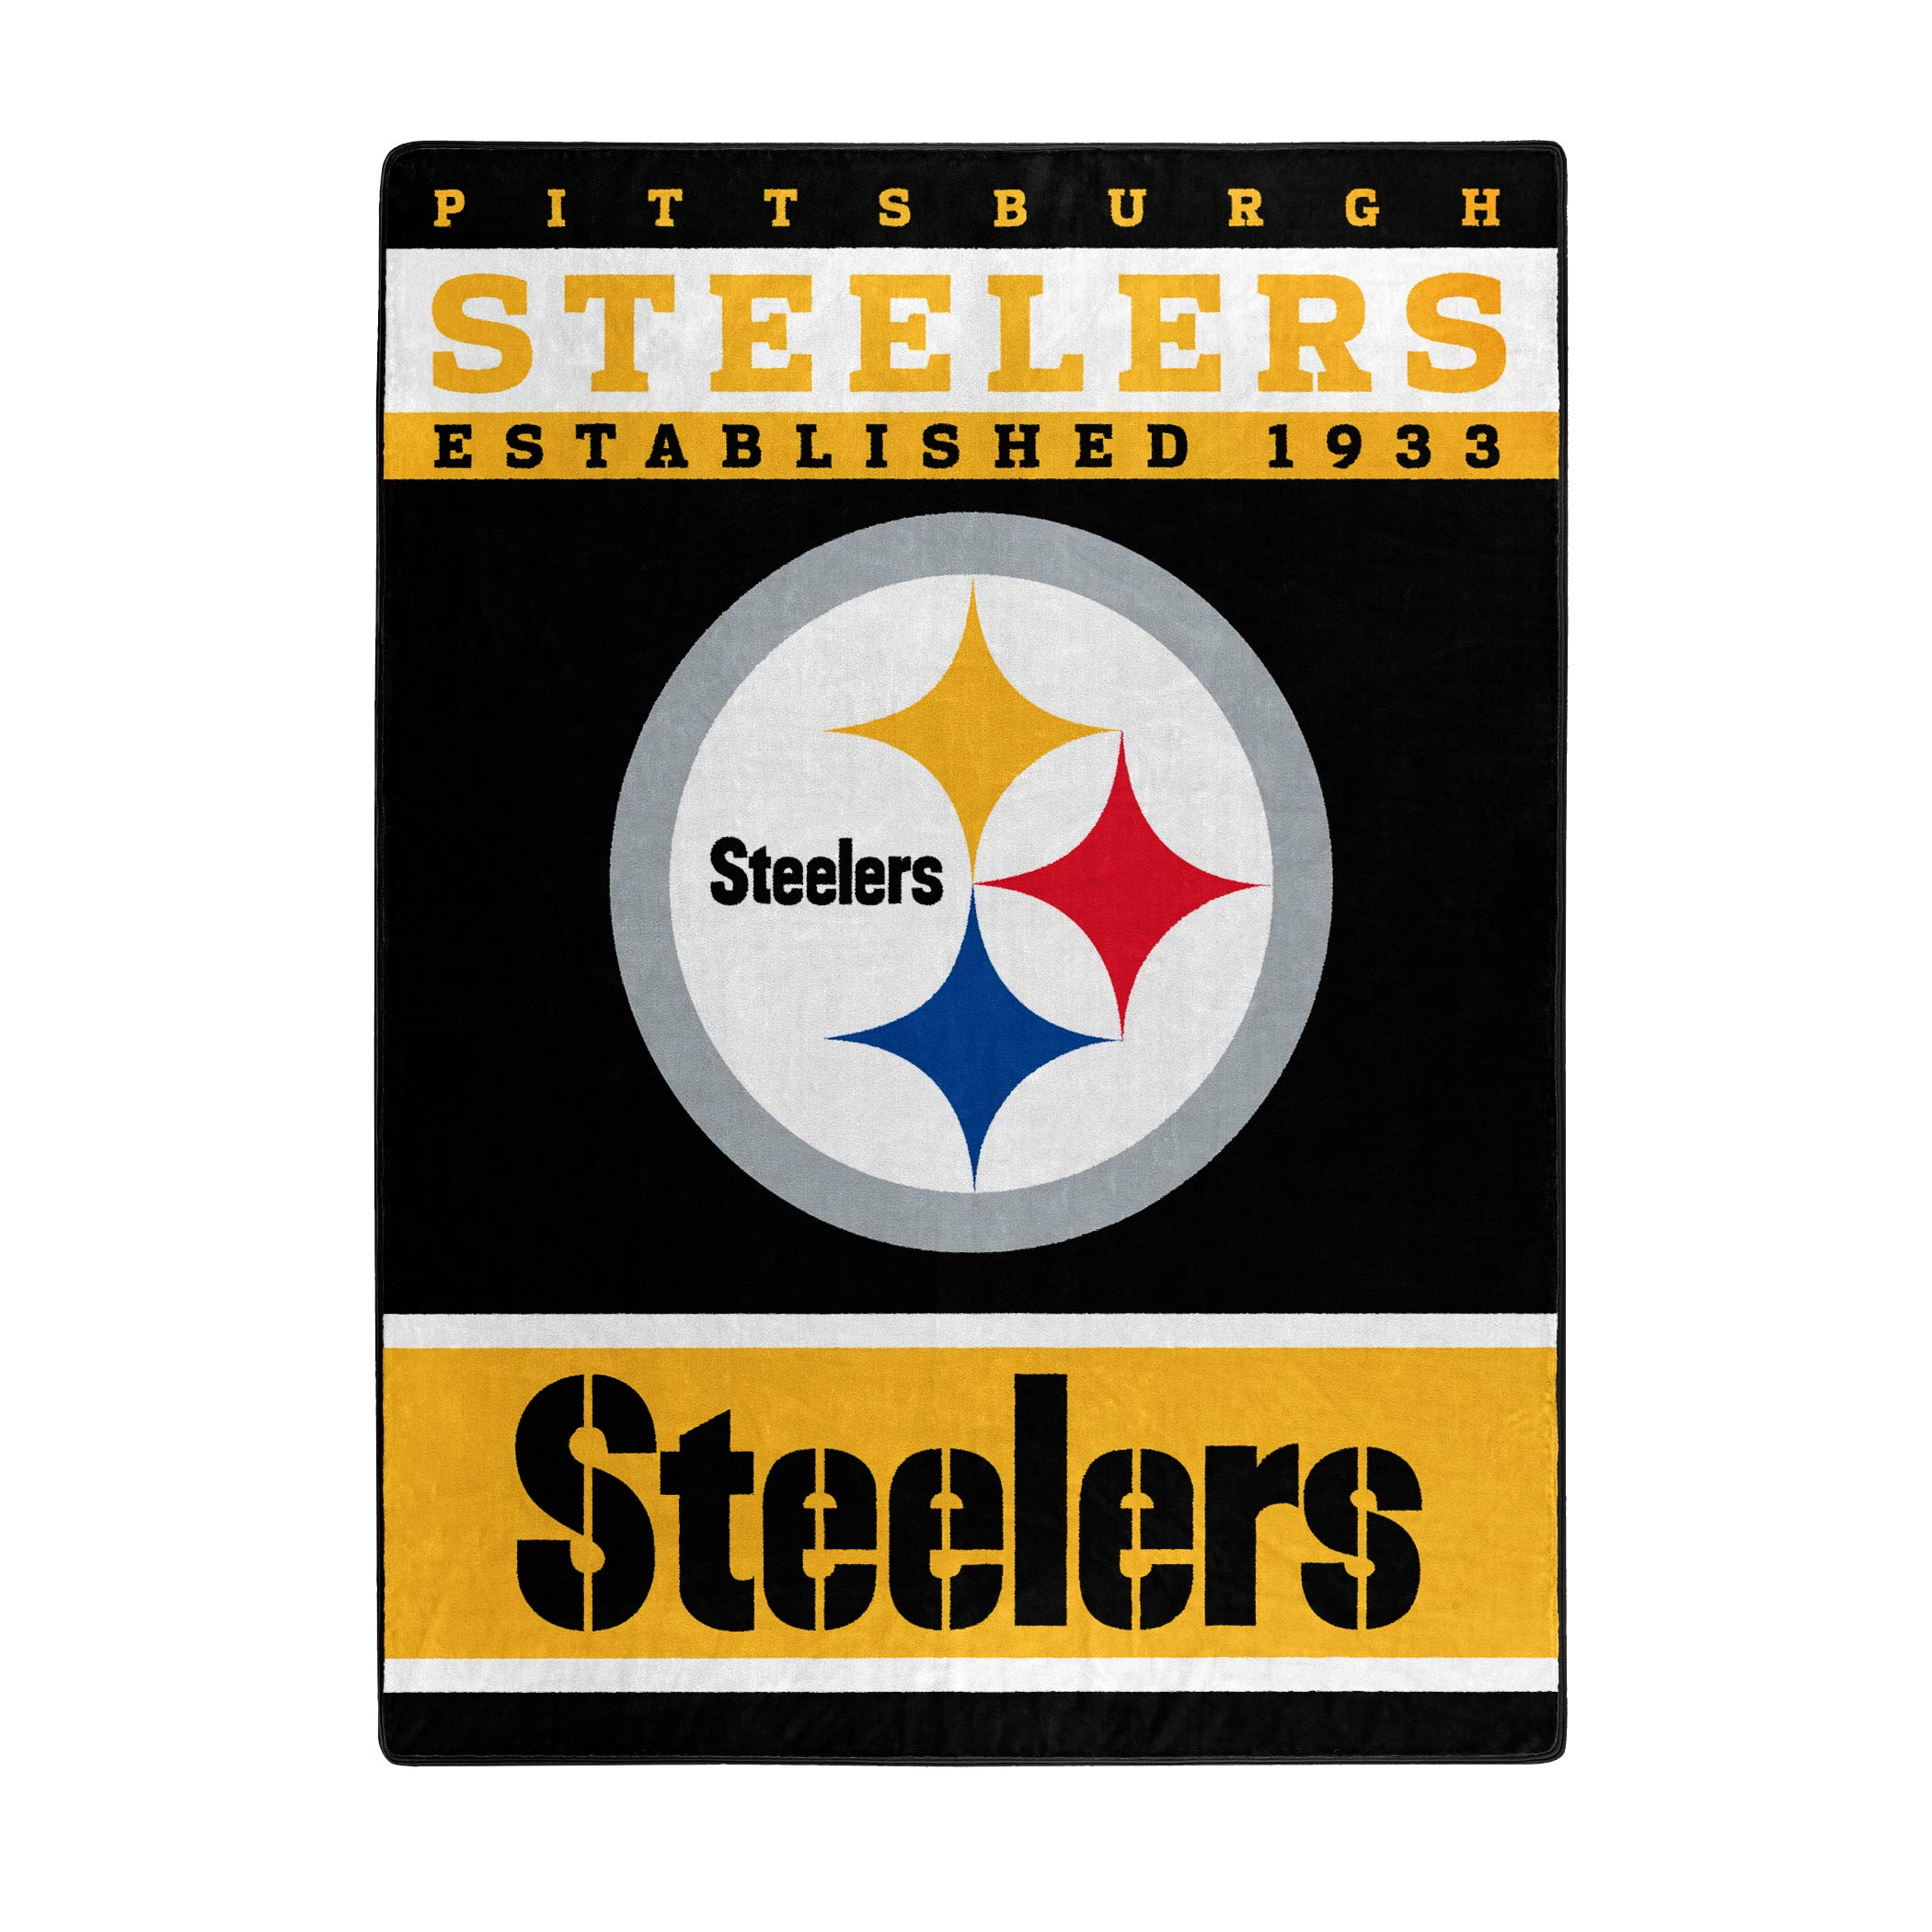 The Northwest Company Officially Licensed NFL Pittsburgh Steelers 12th Man Plush Raschel Throw Blanket, 60'' x 80'', Multi Color by The Northwest Company